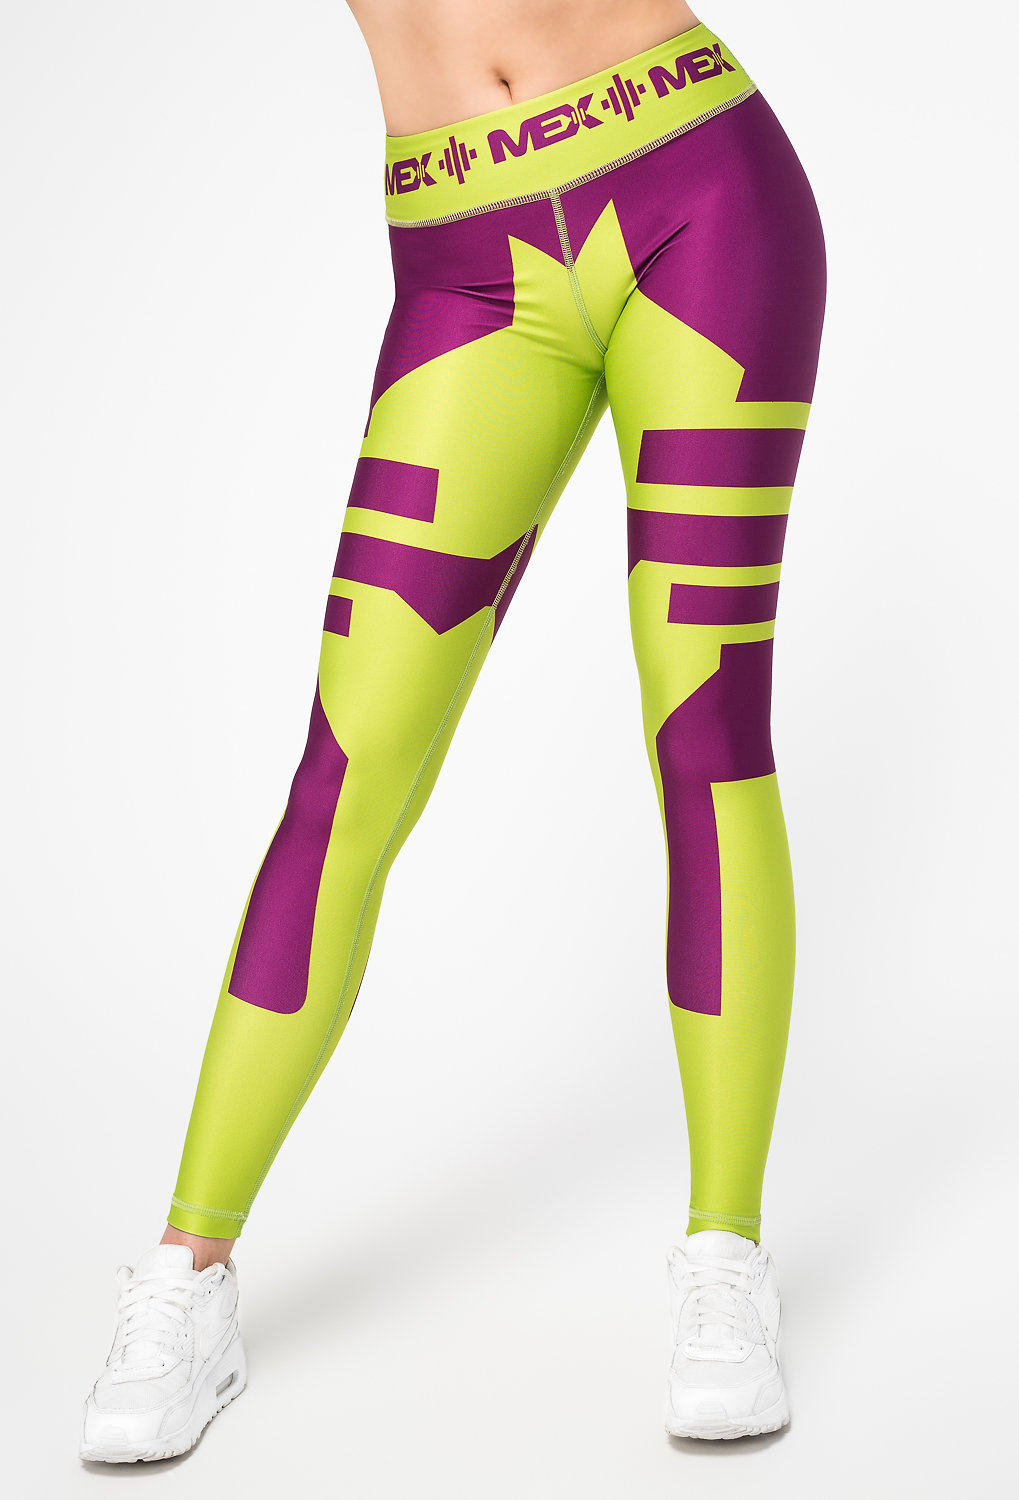 MEX Muscle Excellence | U CAN! | MEX Women's Leggings Fit Girl Lime